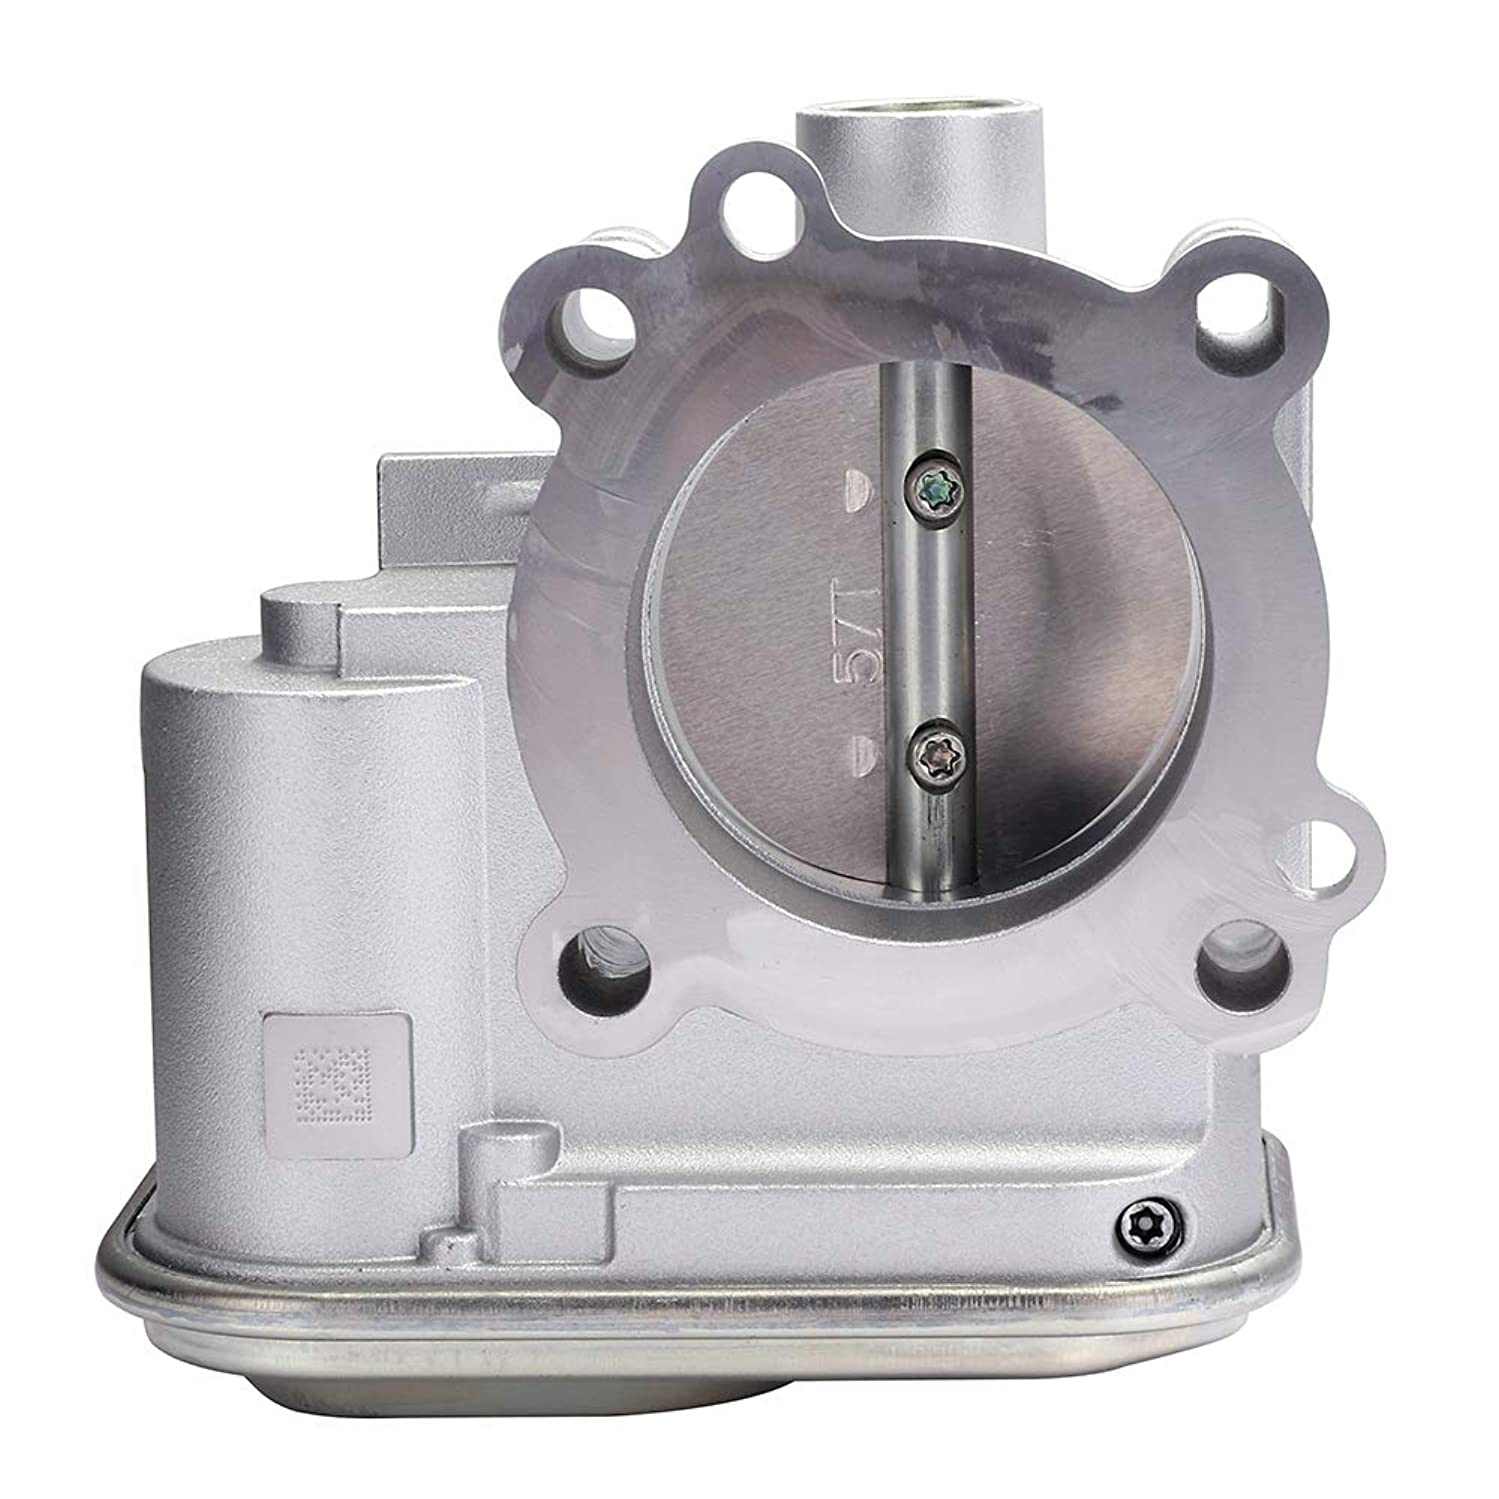 ECCPP Electric Throttle Body Air Control Assembly Fit 2007-2010 Chrysler Sebring /2007-2012 Dodge Caliber /2009-2017 Dodge Journey /2007-2017 Jeep Compass OE 4891735AC, 4891735AB, 4891735AA